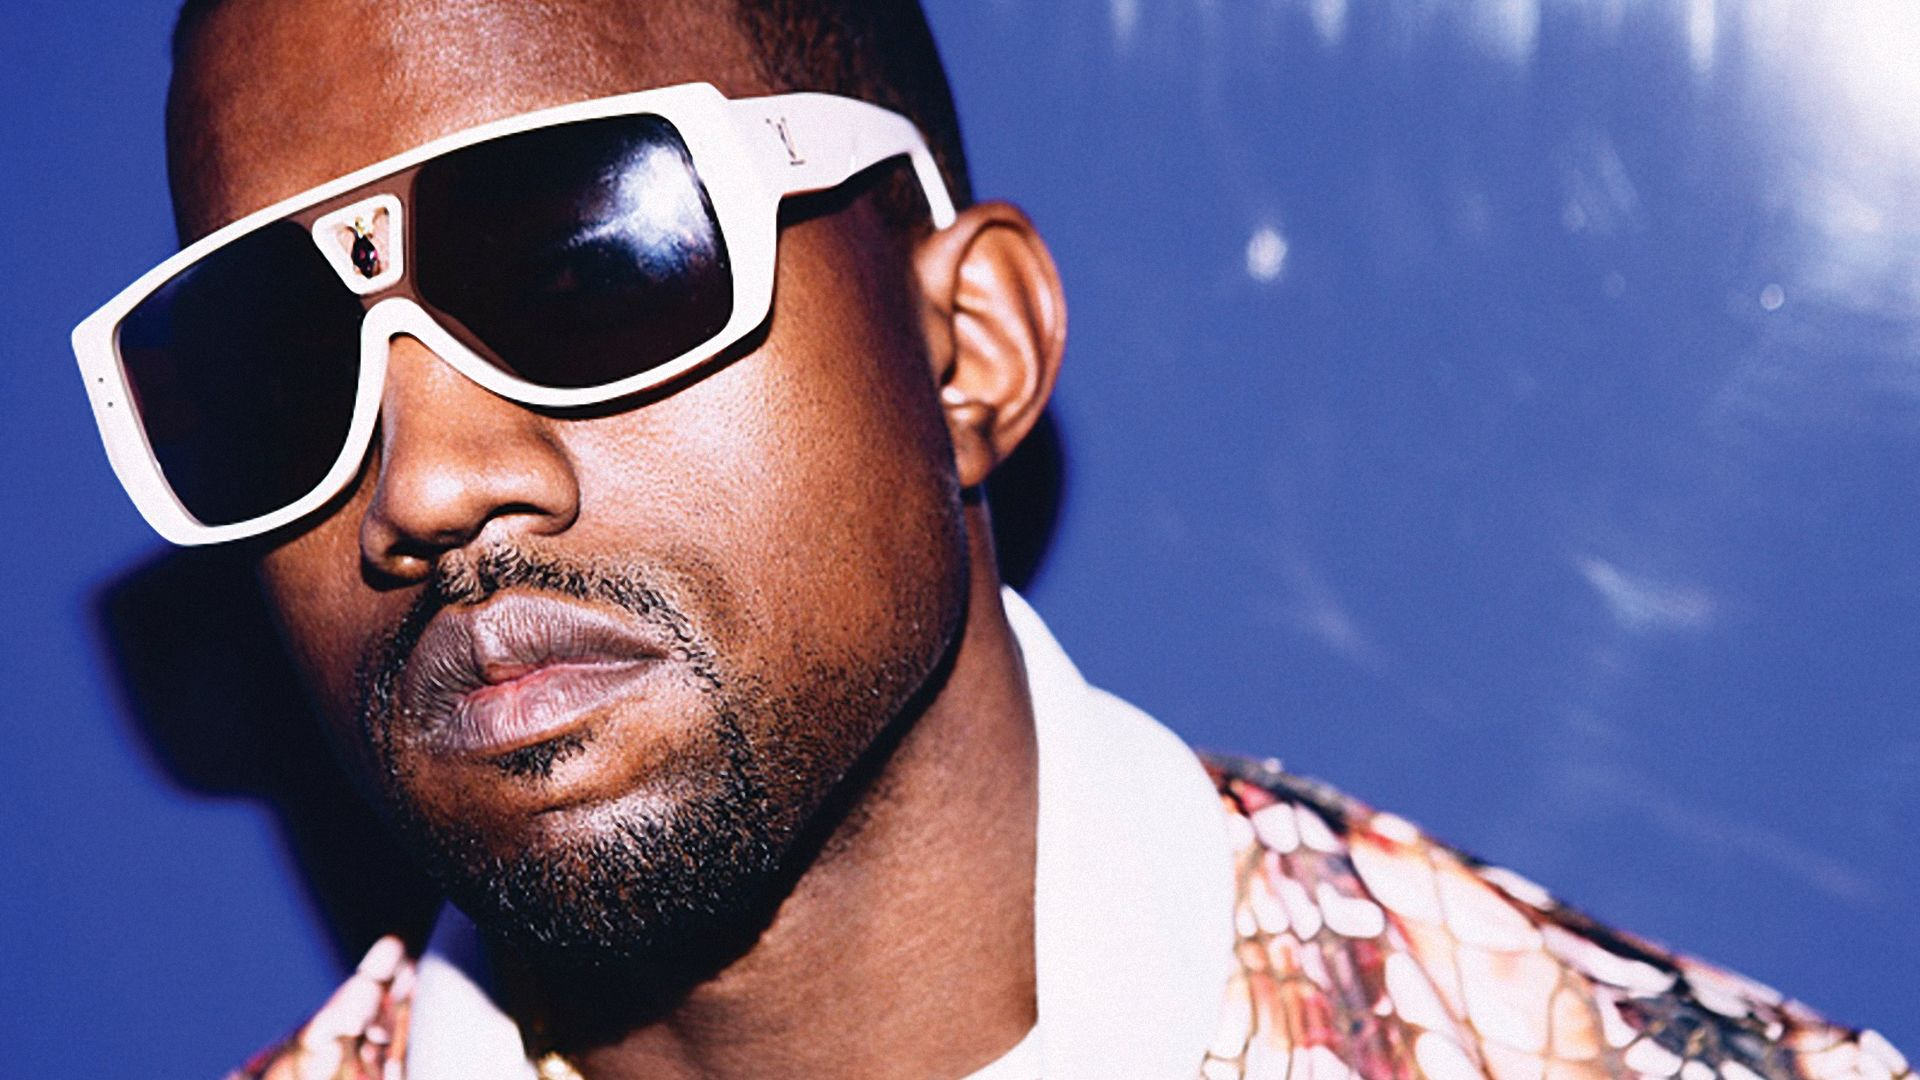 Kanye West Power - 1920x1080 - Full HD 16/9 - Wallpaper #6866 on ...